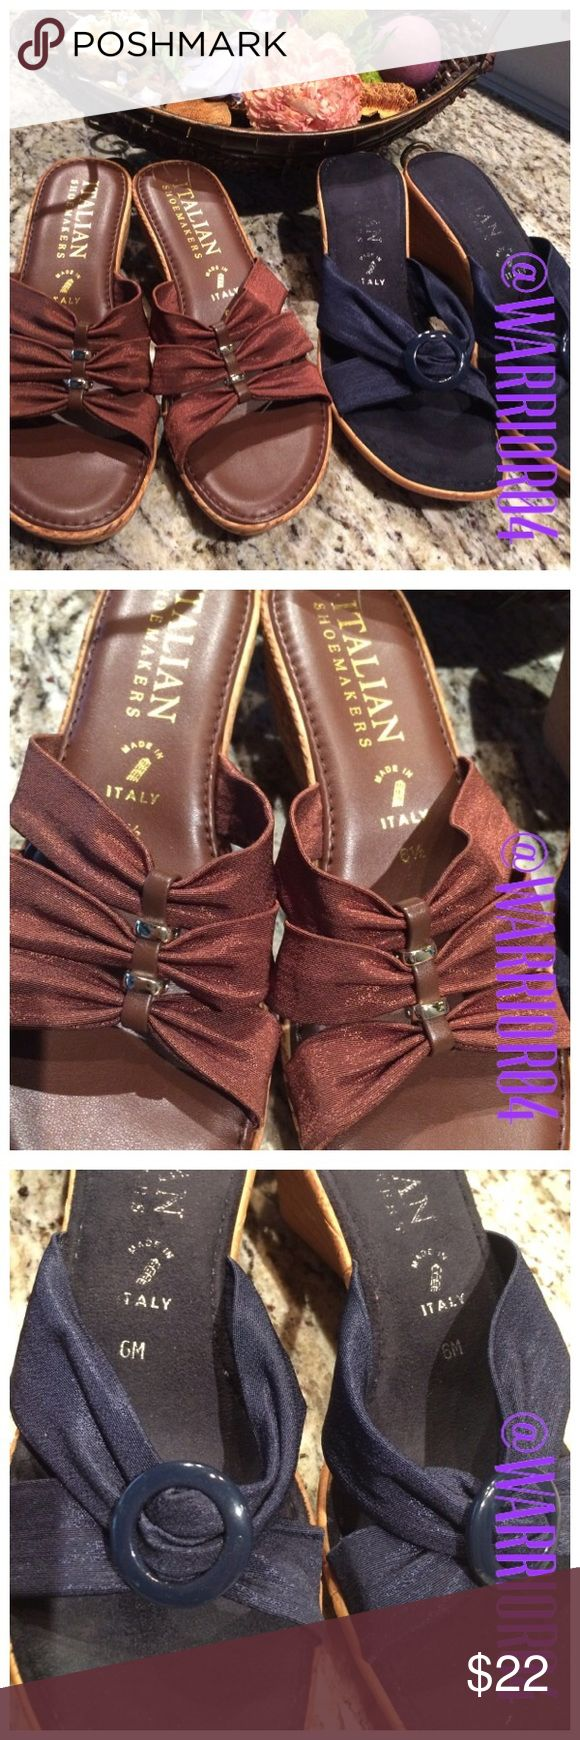 Bundle of 2 pairs of Italian Shoes Size 6 & 6.5 Bundle of 2 pairs of Italian Shoemakers Shoes Size 6 & 6.5 the brown pair is size 6.5 and the blue pair is a size 6 excellent shape look at the soles of the shoes! Italian Shoemakers Shoes